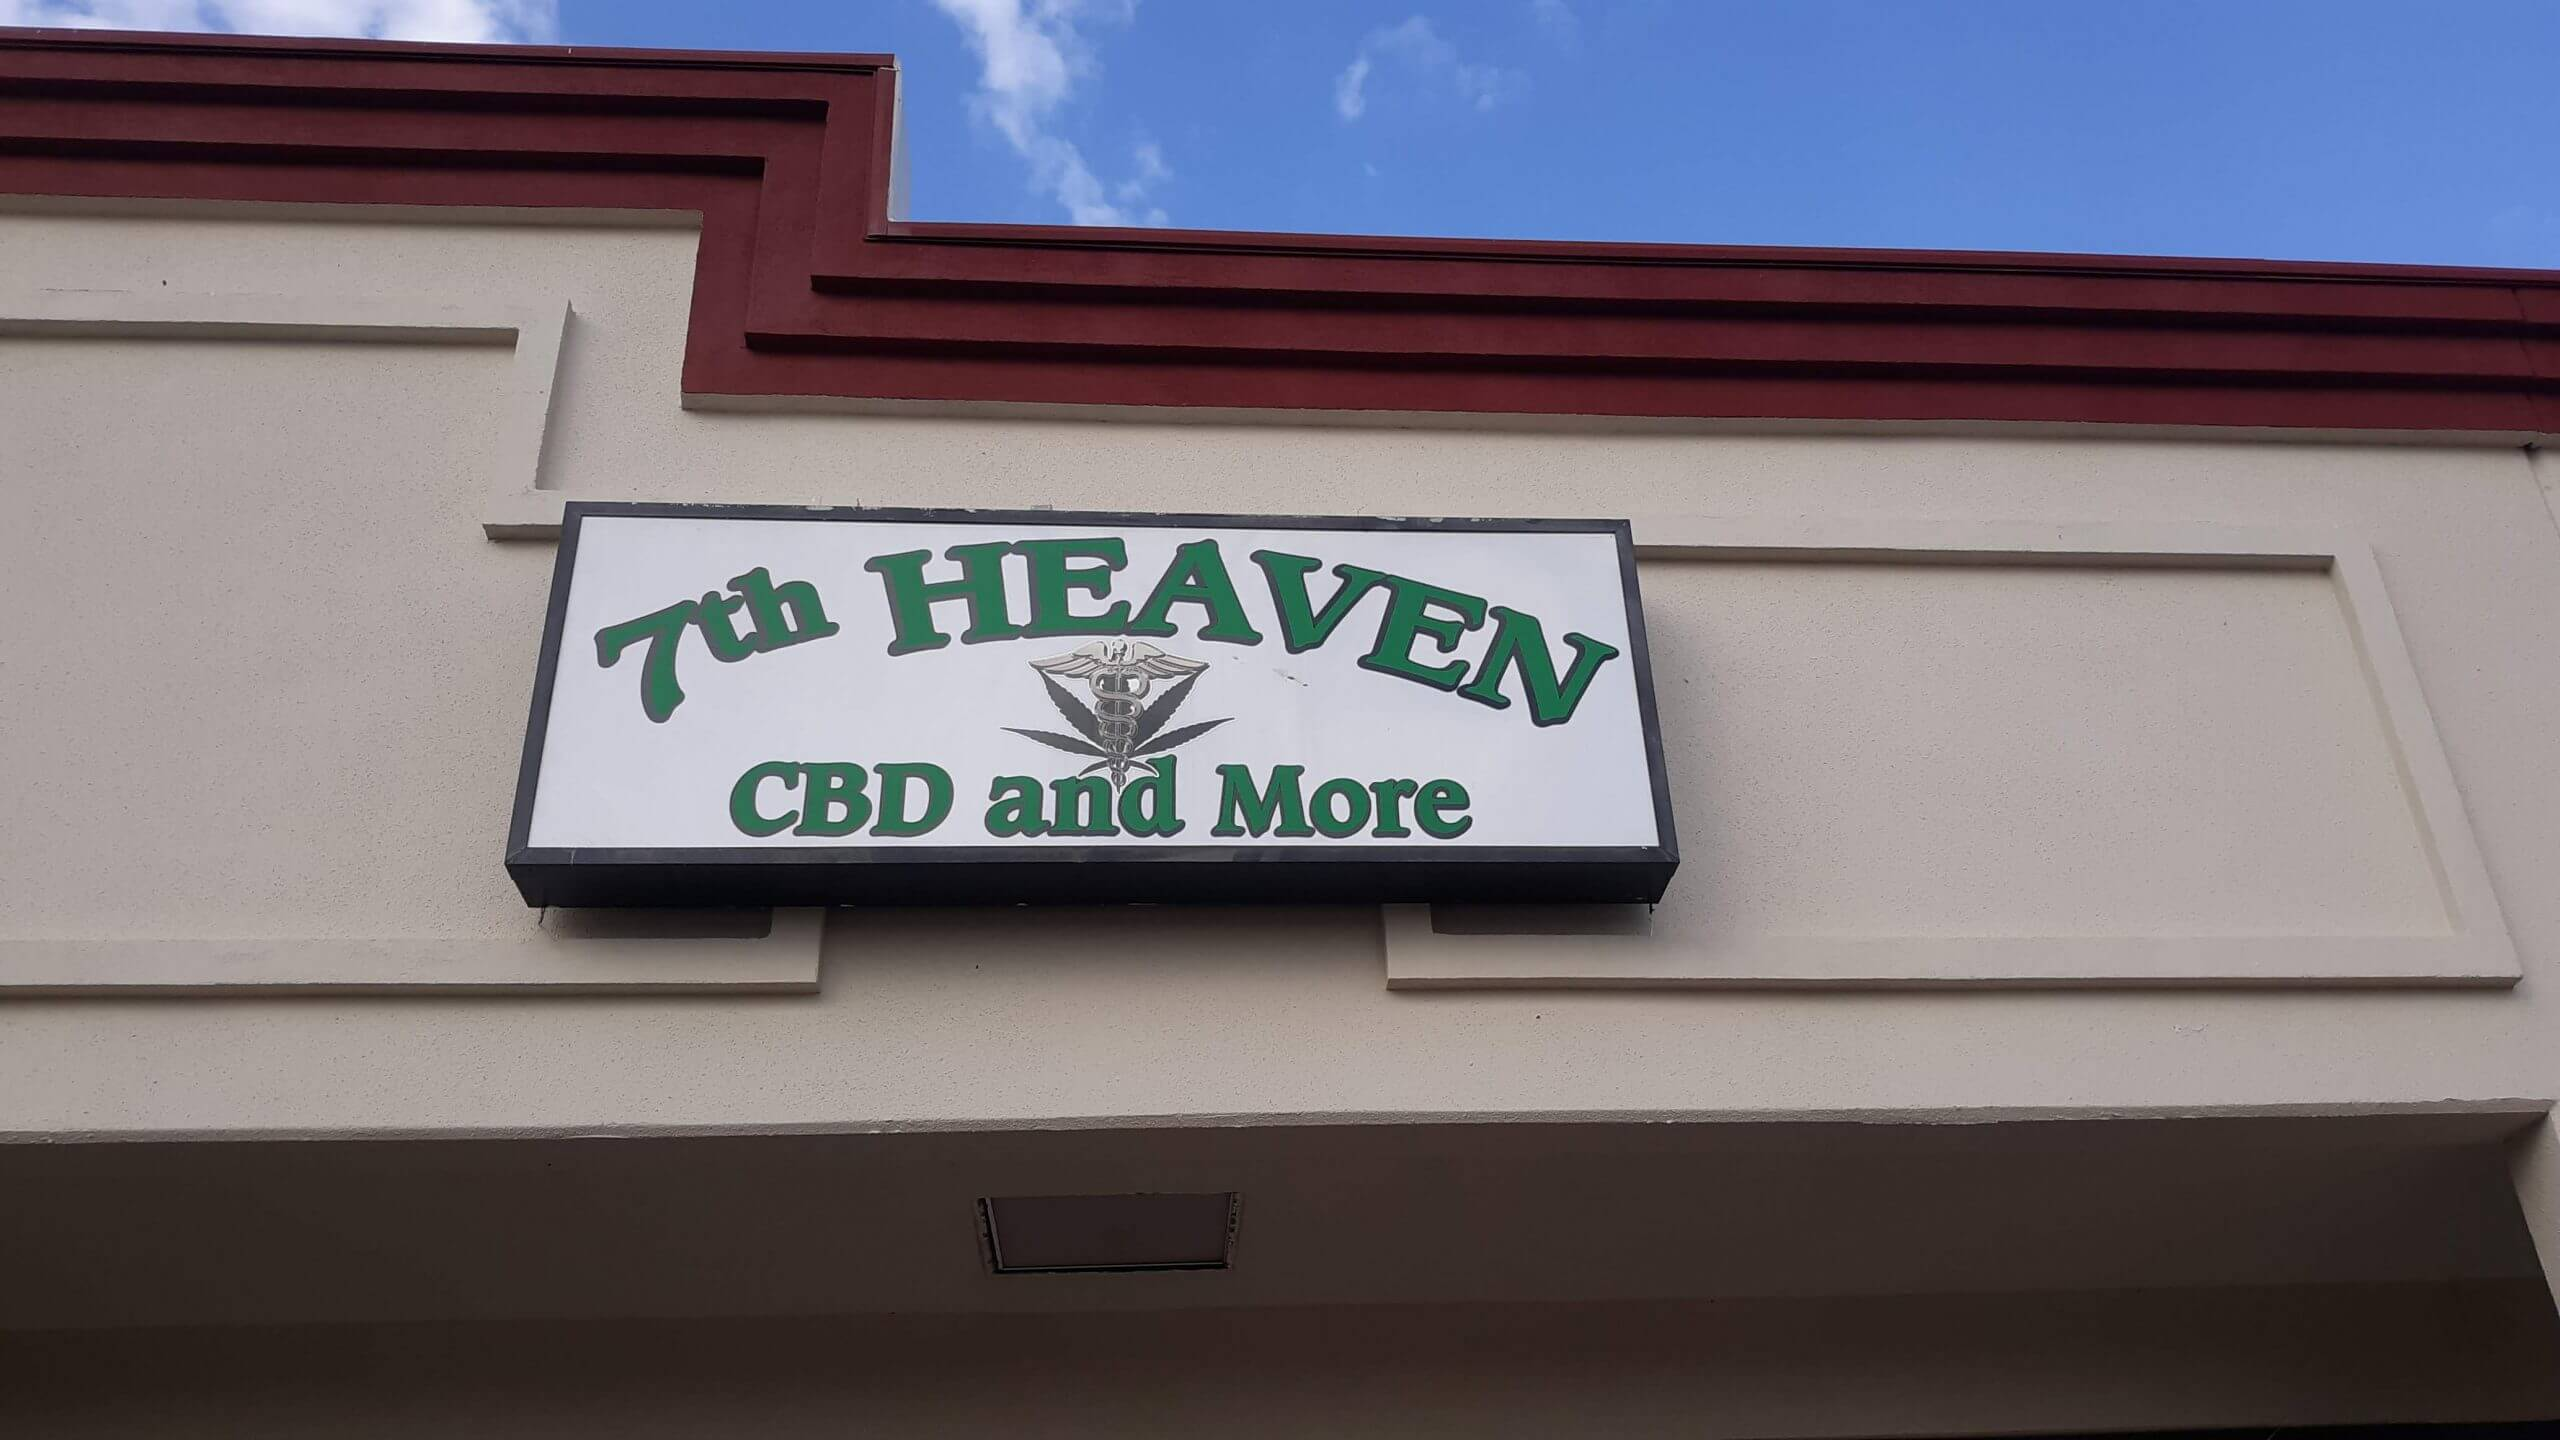 CBD Products, Herbs, bath Booms, Incense and edibles For Sales In Our Store In Killeen, TX (35)